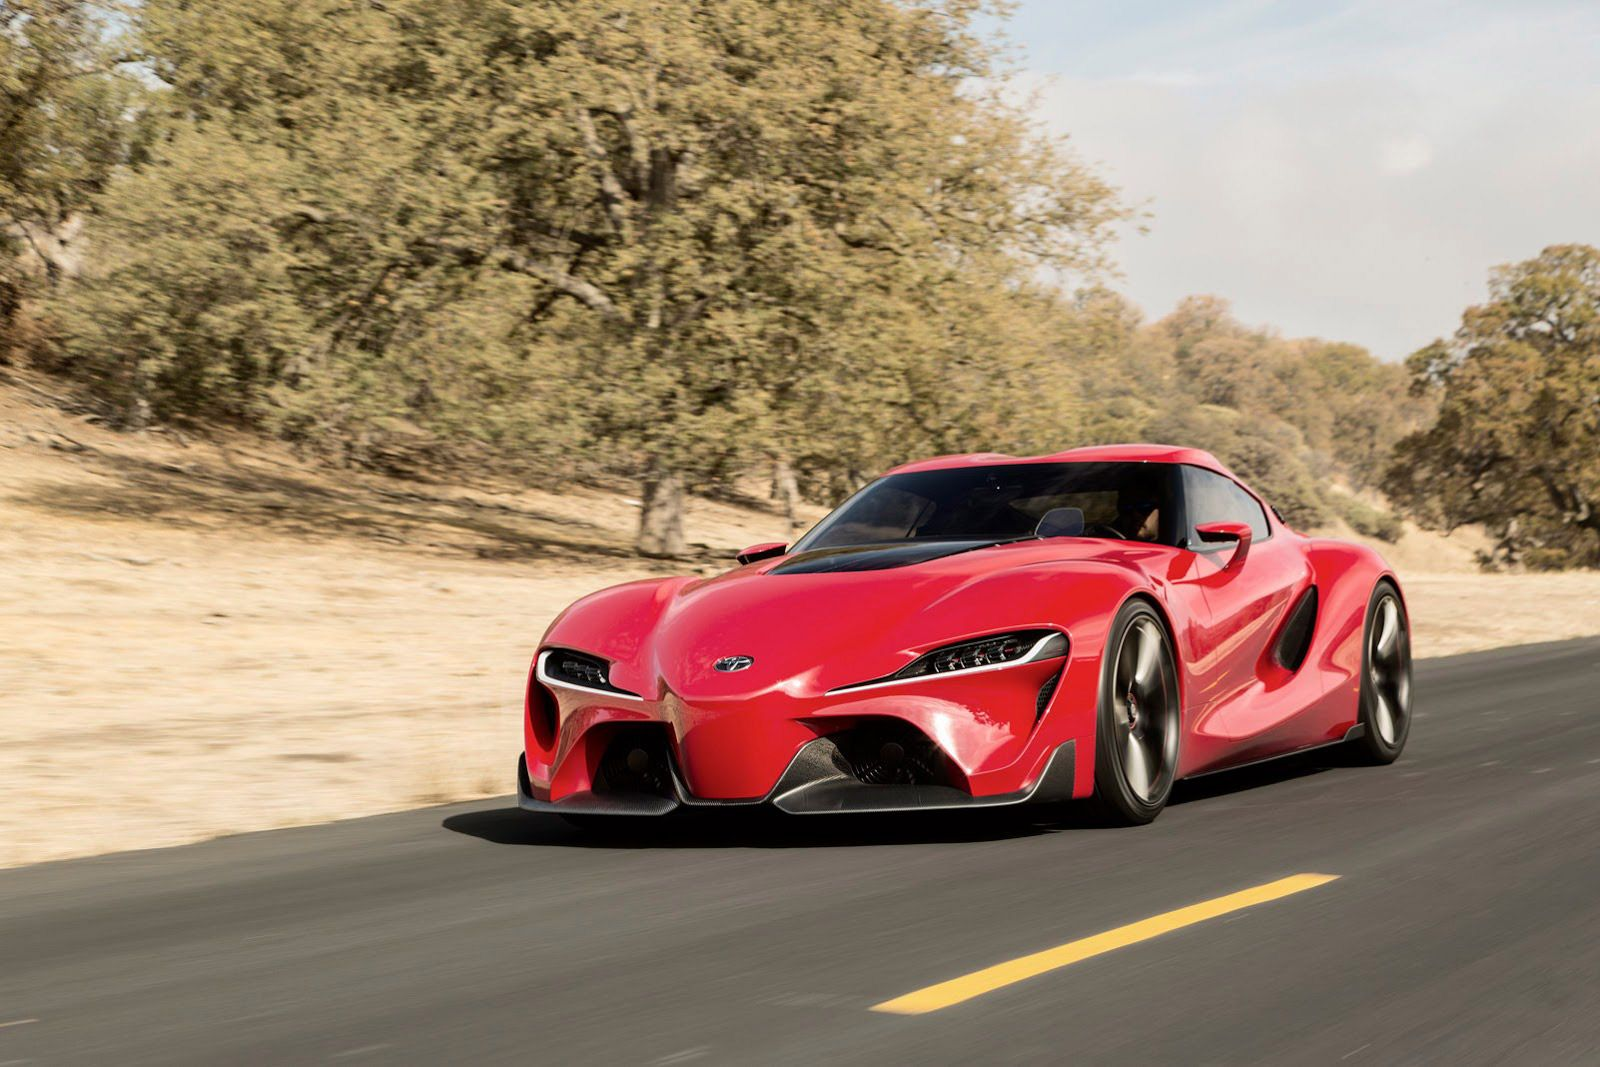 Toyota Ft 1 Concept Will Spawn New Supra Report New Toyota Supra Super Cars Concept Cars